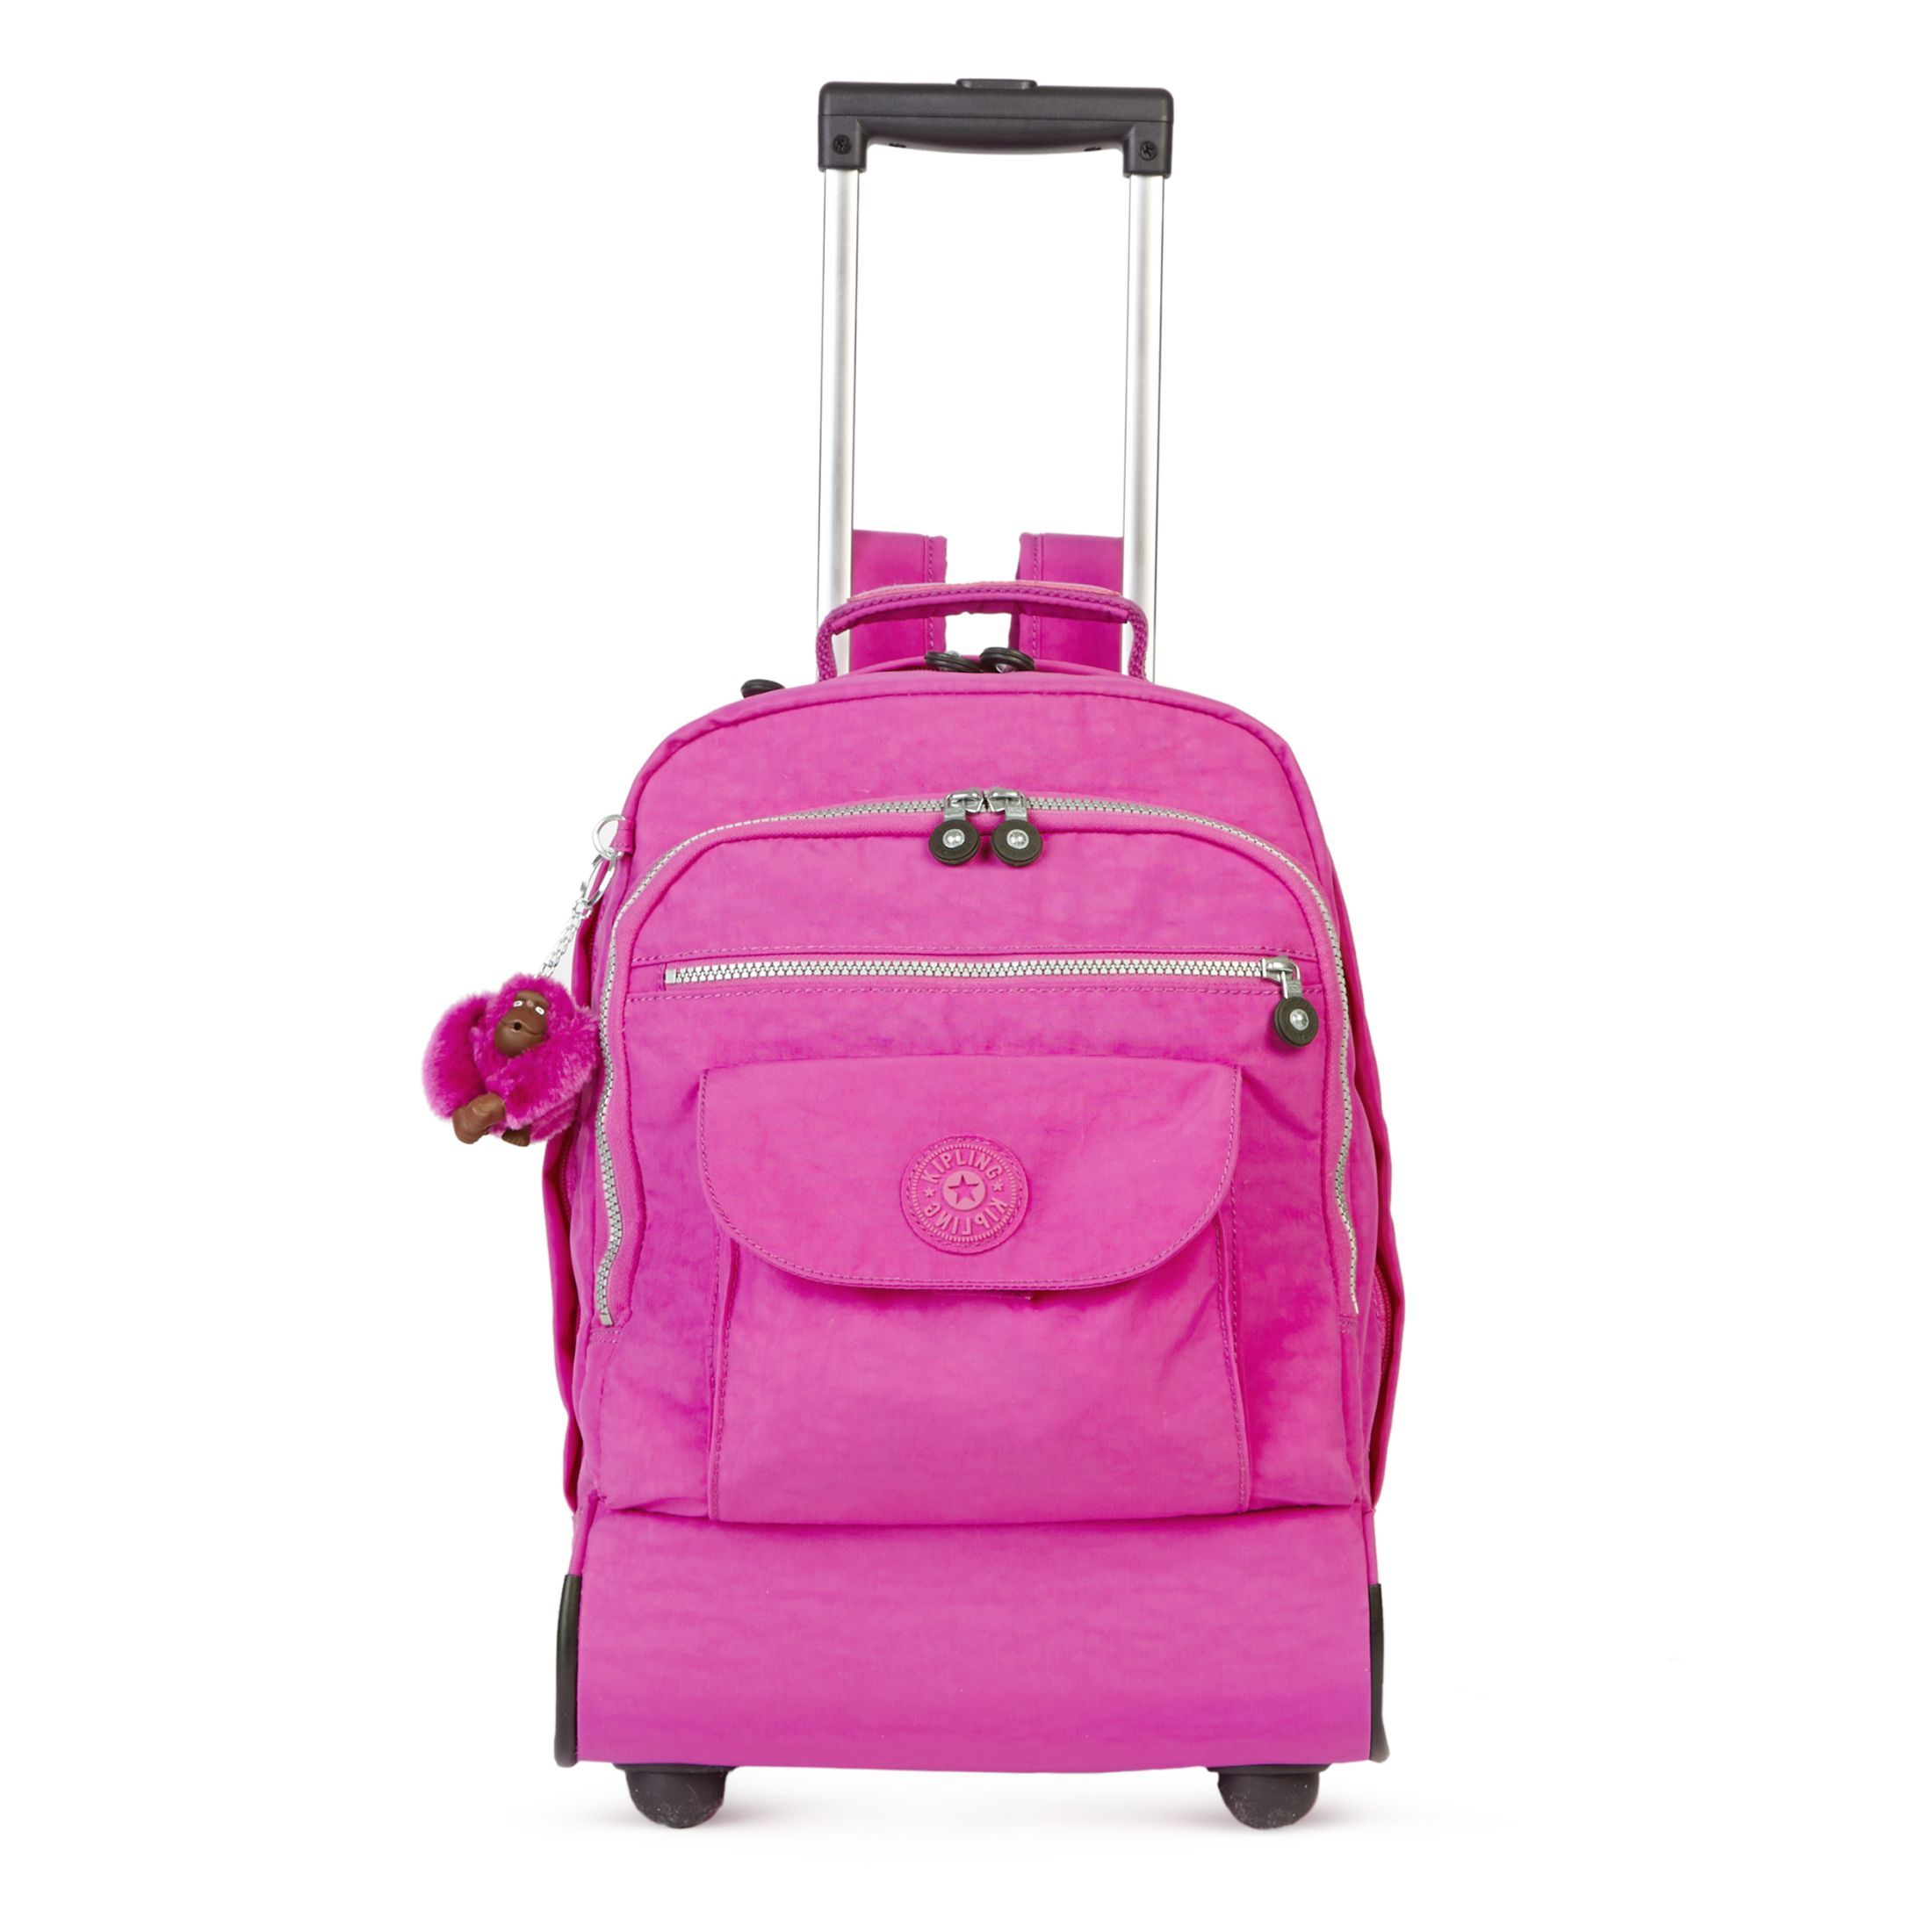 5dcc42d99 Sanaa Large Rolling Backpack | back to school/reality | Backpacks ...